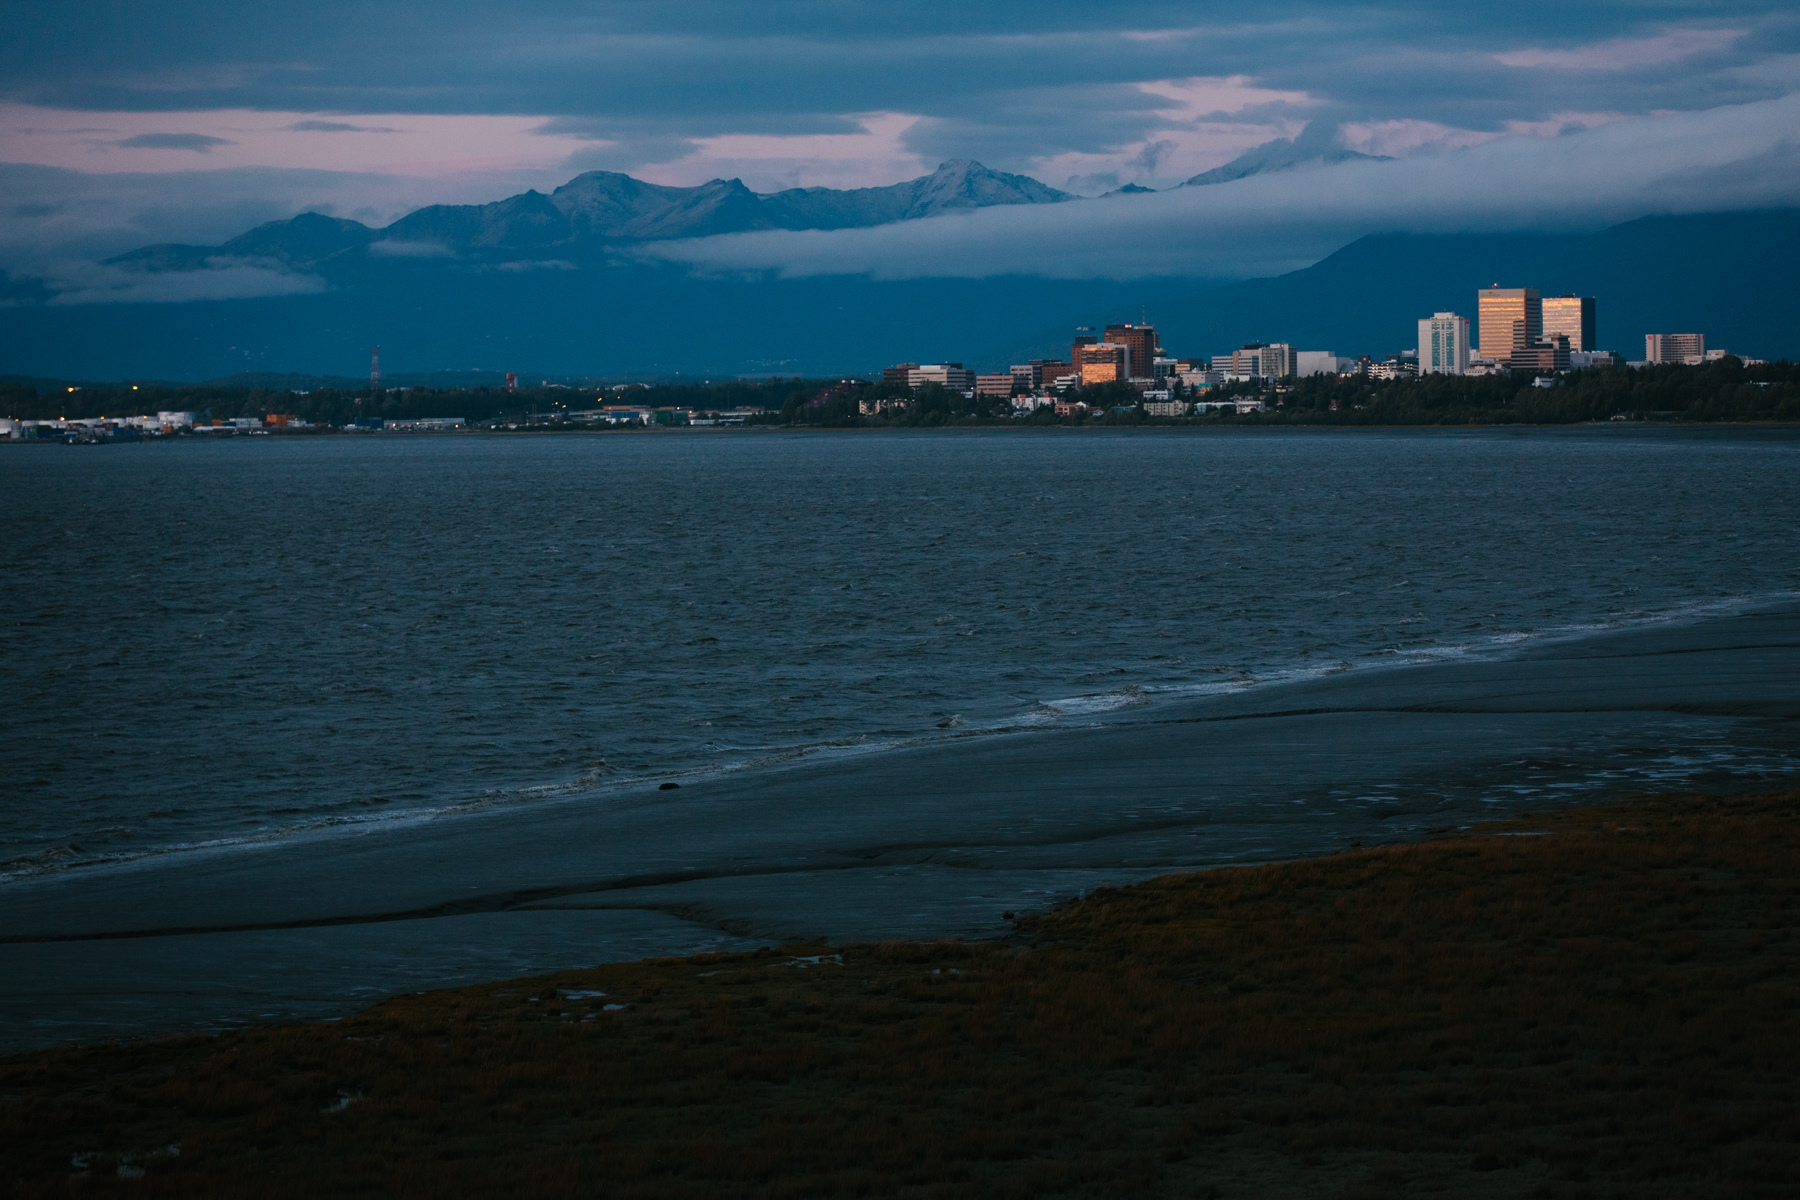 Downtown Anchorage, viewed across a portion of Cook Inlet.